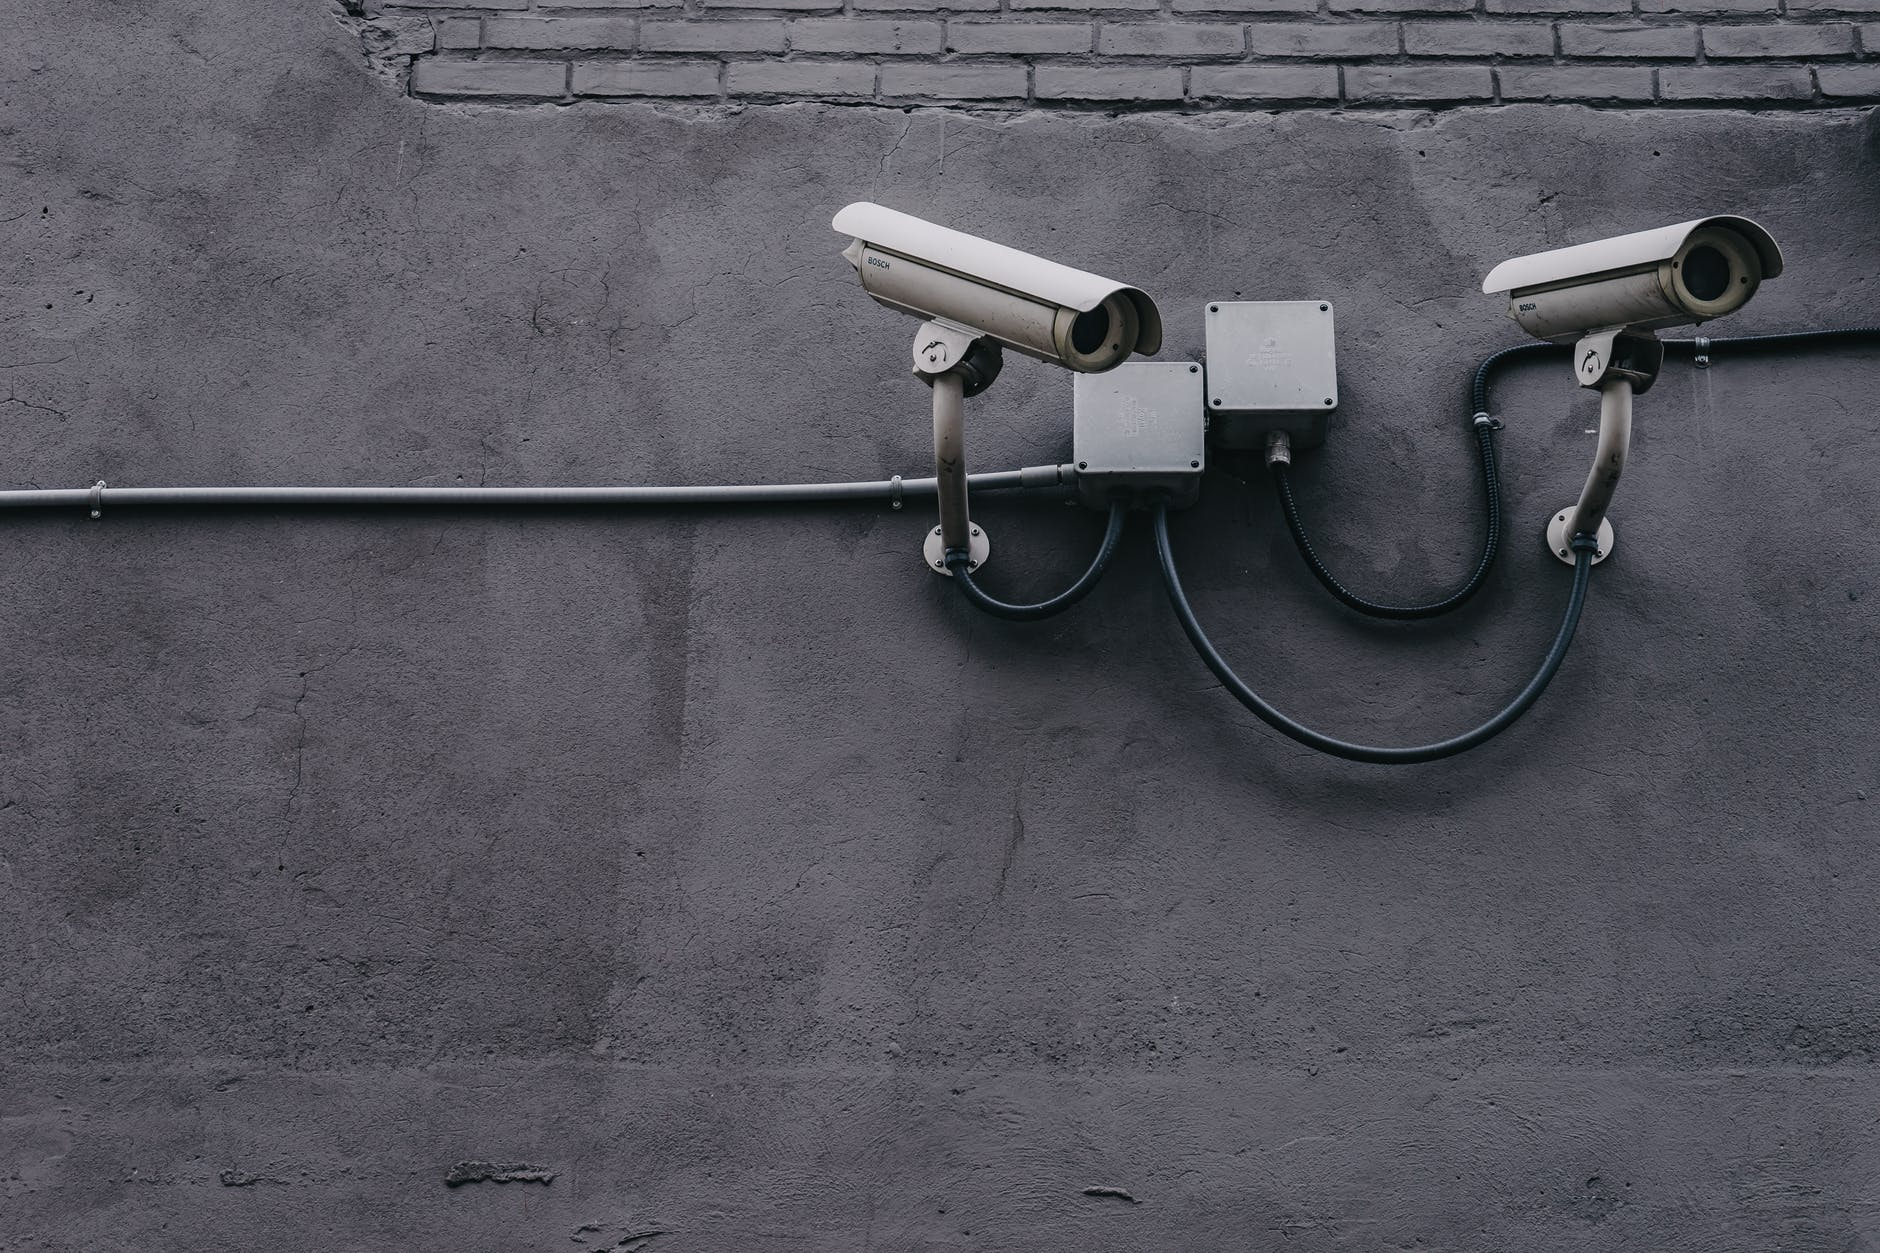 6 things to consider before installing a home security system